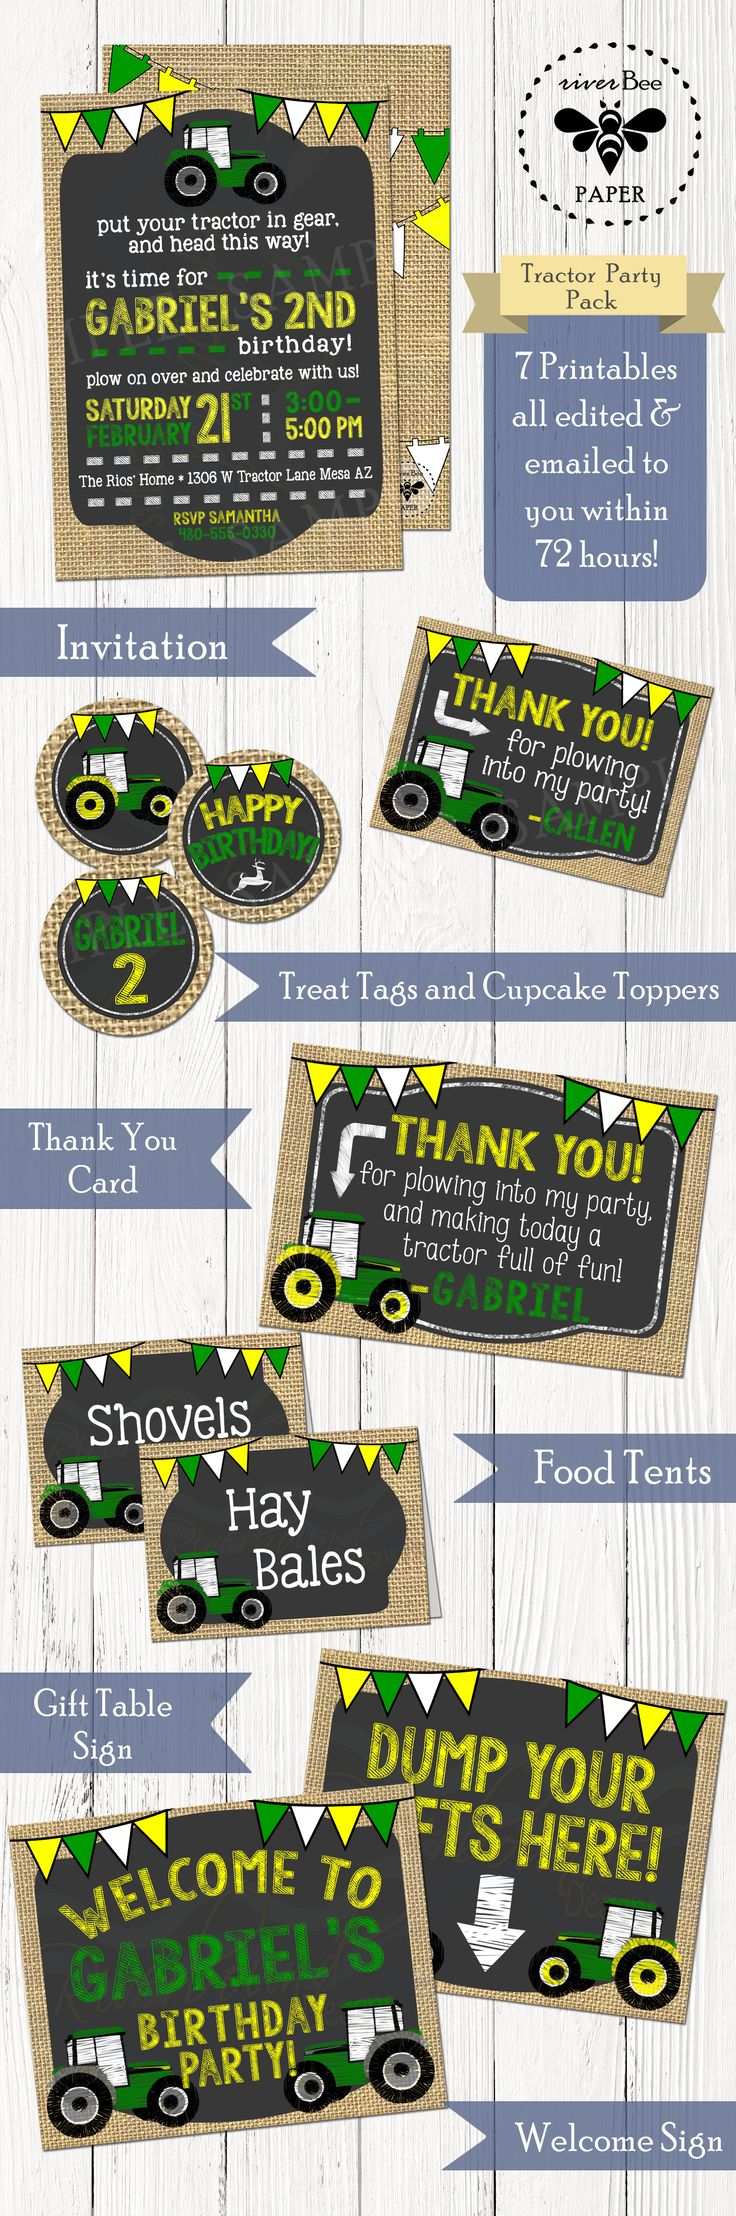 Tractor Party Pack Printables including Invitation, Cupcake Toppers, Thank You Card, Treat Tags, Food Tents, Welcome Sign and Gift Table Sign all from riverBee Paper for $25! #JohnDeere #Tractor #Birthday